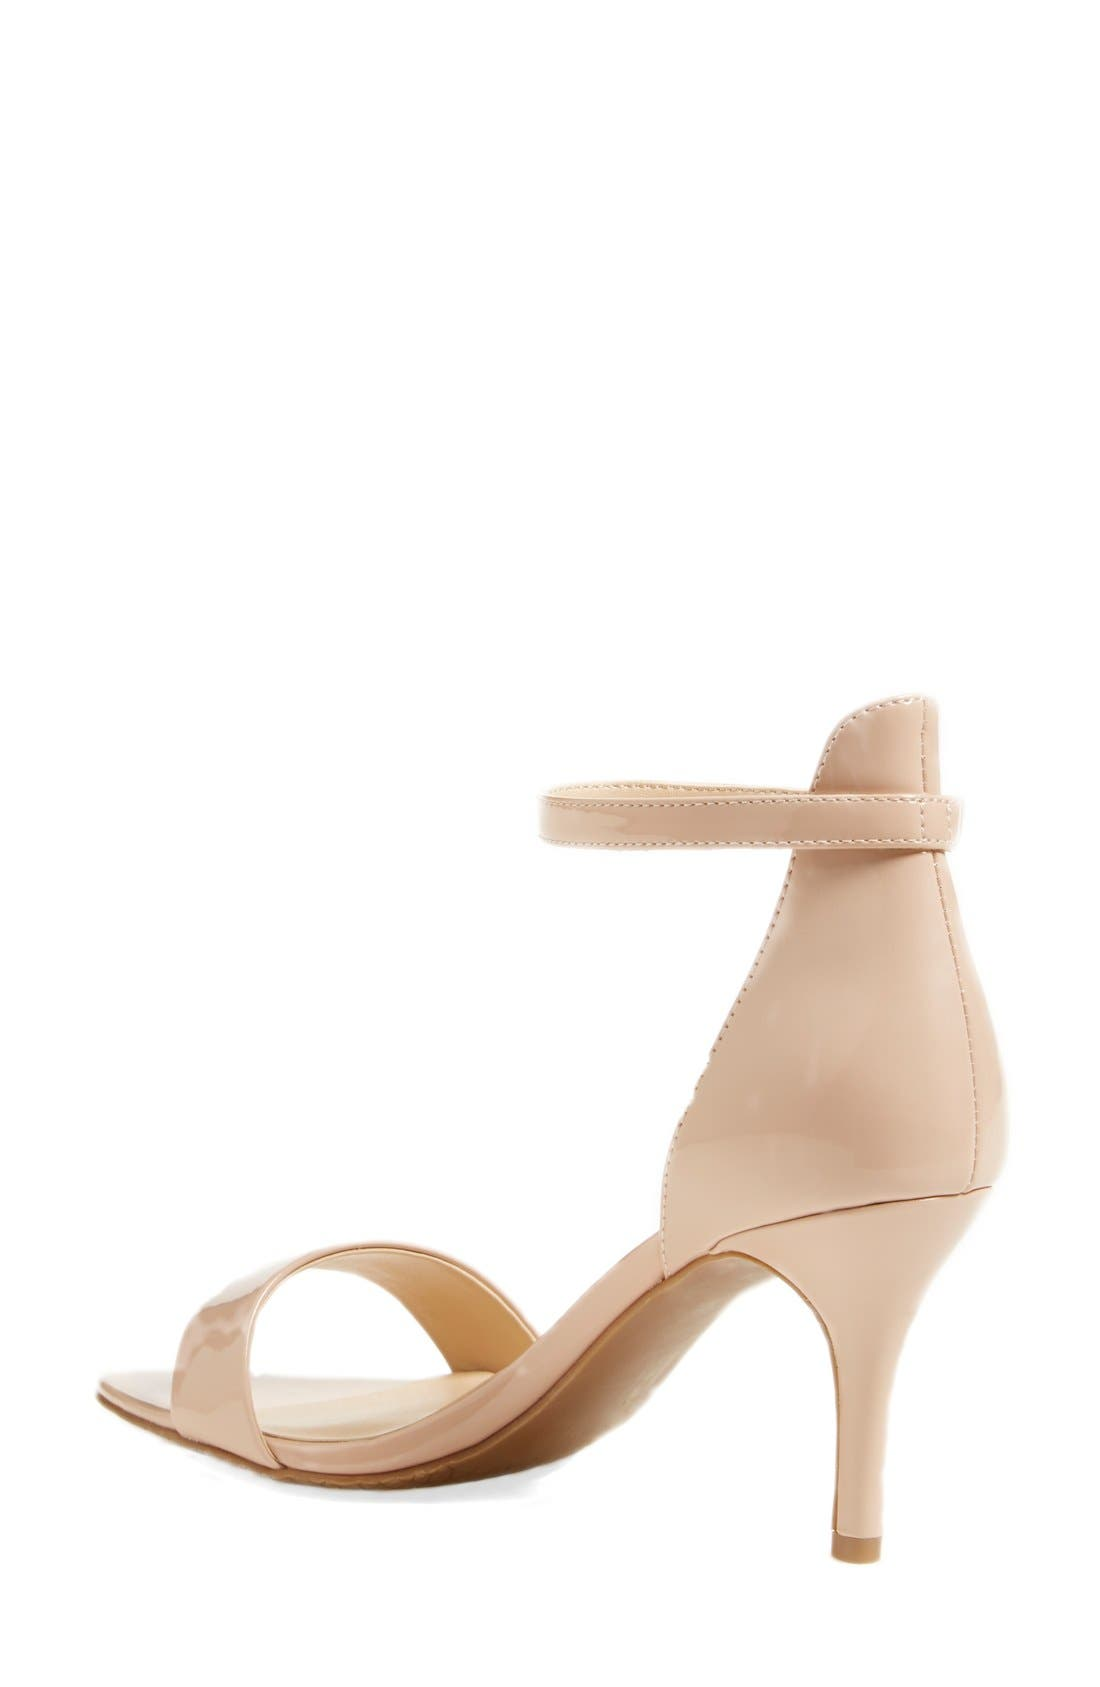 Alternate Image 2  - BP. 'Luminate' Open Toe Dress Sandal (Women)